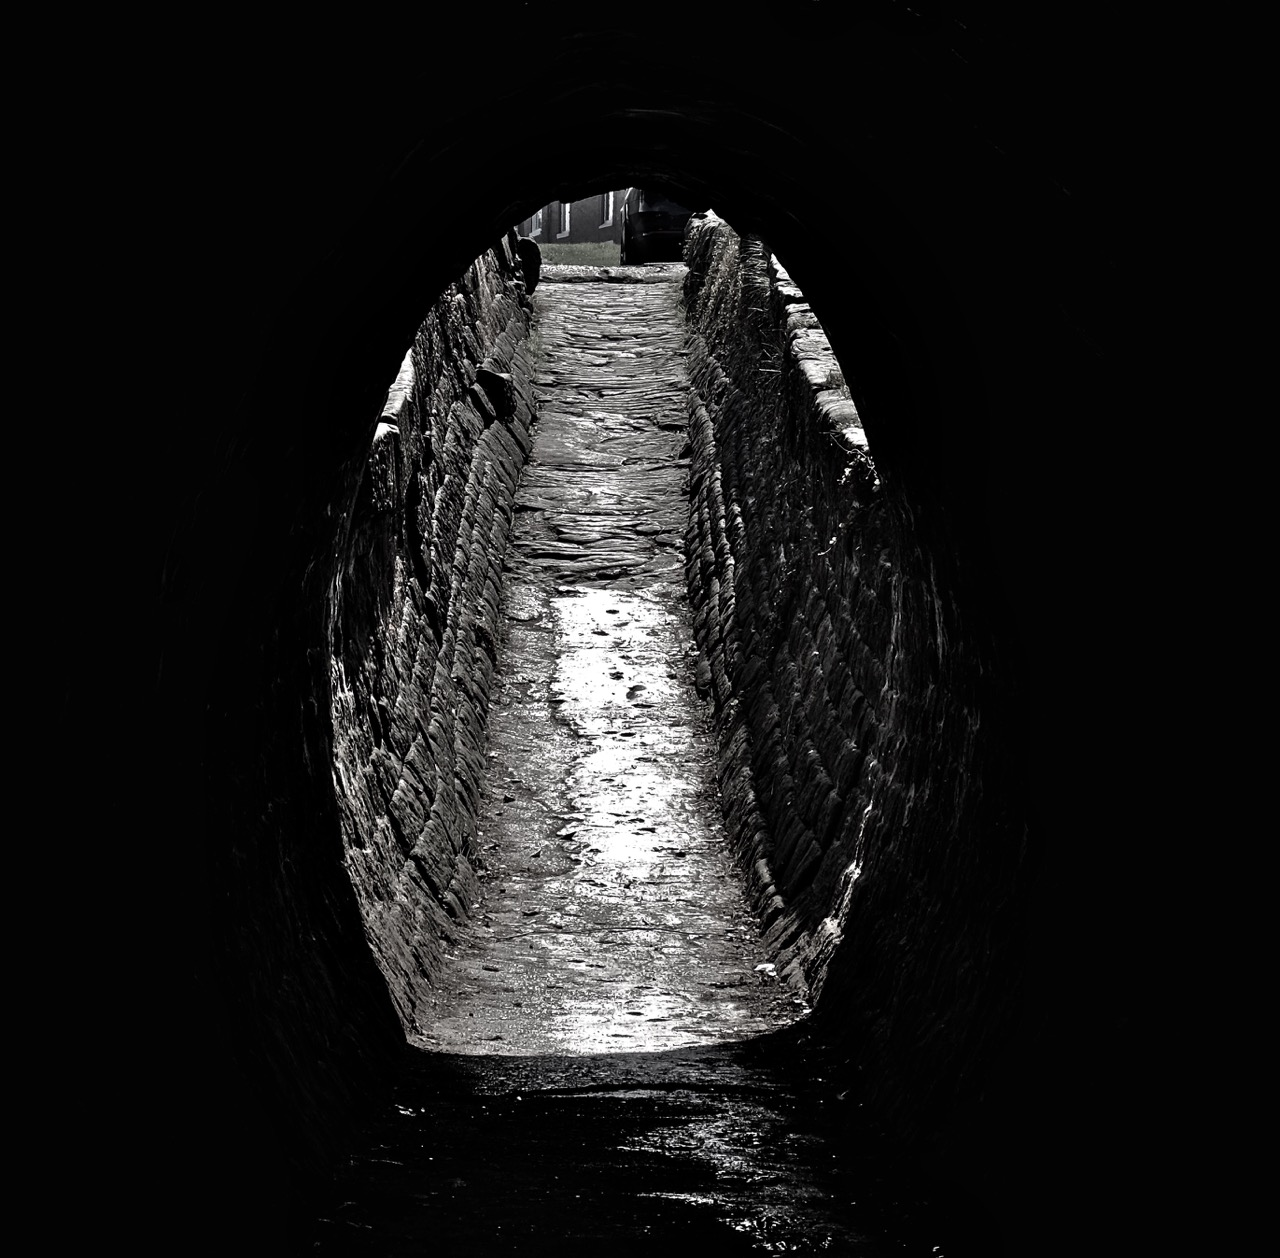 marple locks canal tunnel